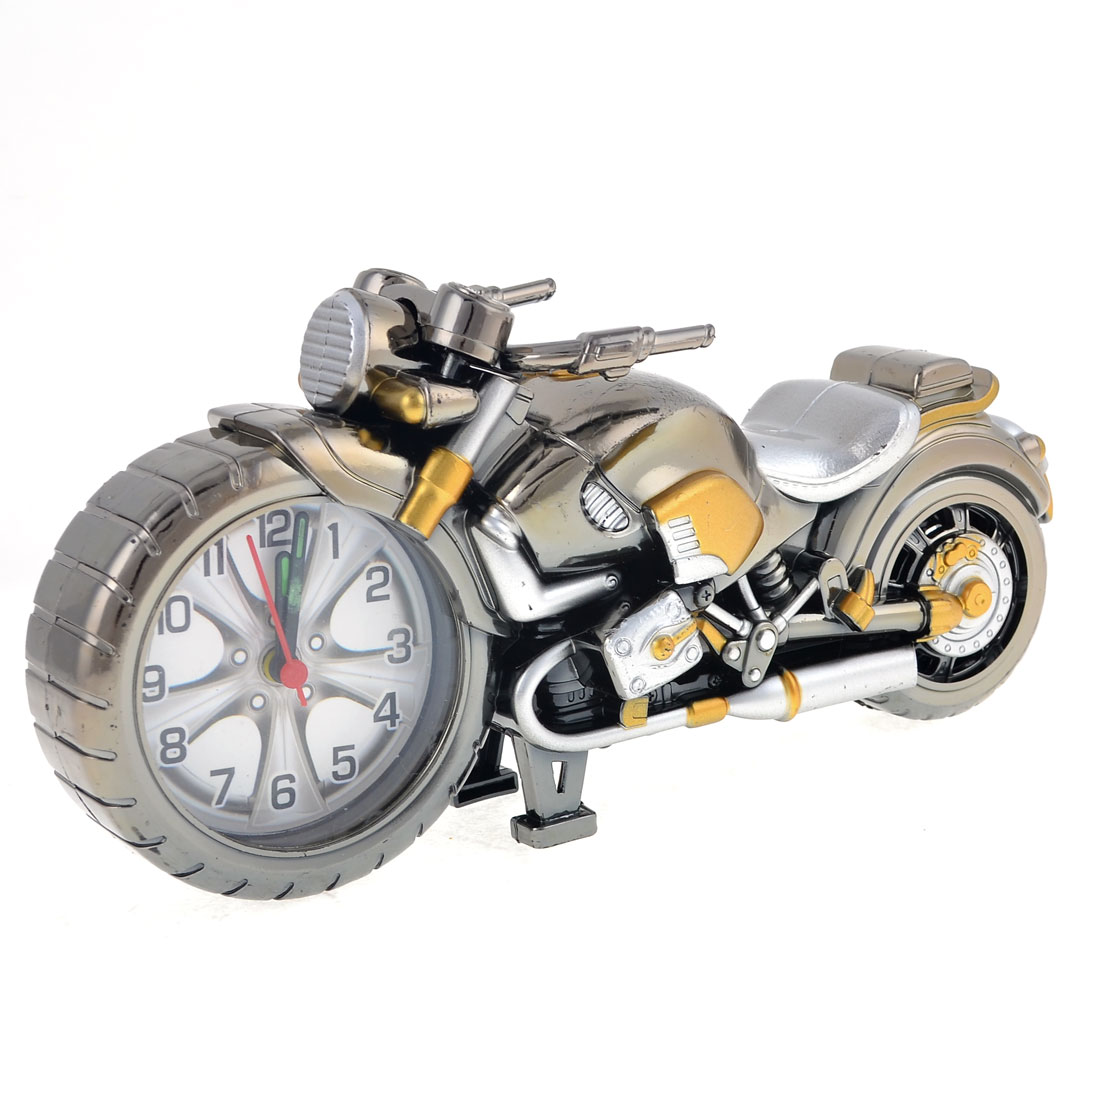 Desk Table Ornament PLastic Motorcycle Shaped Alarm Clock Silver Gray